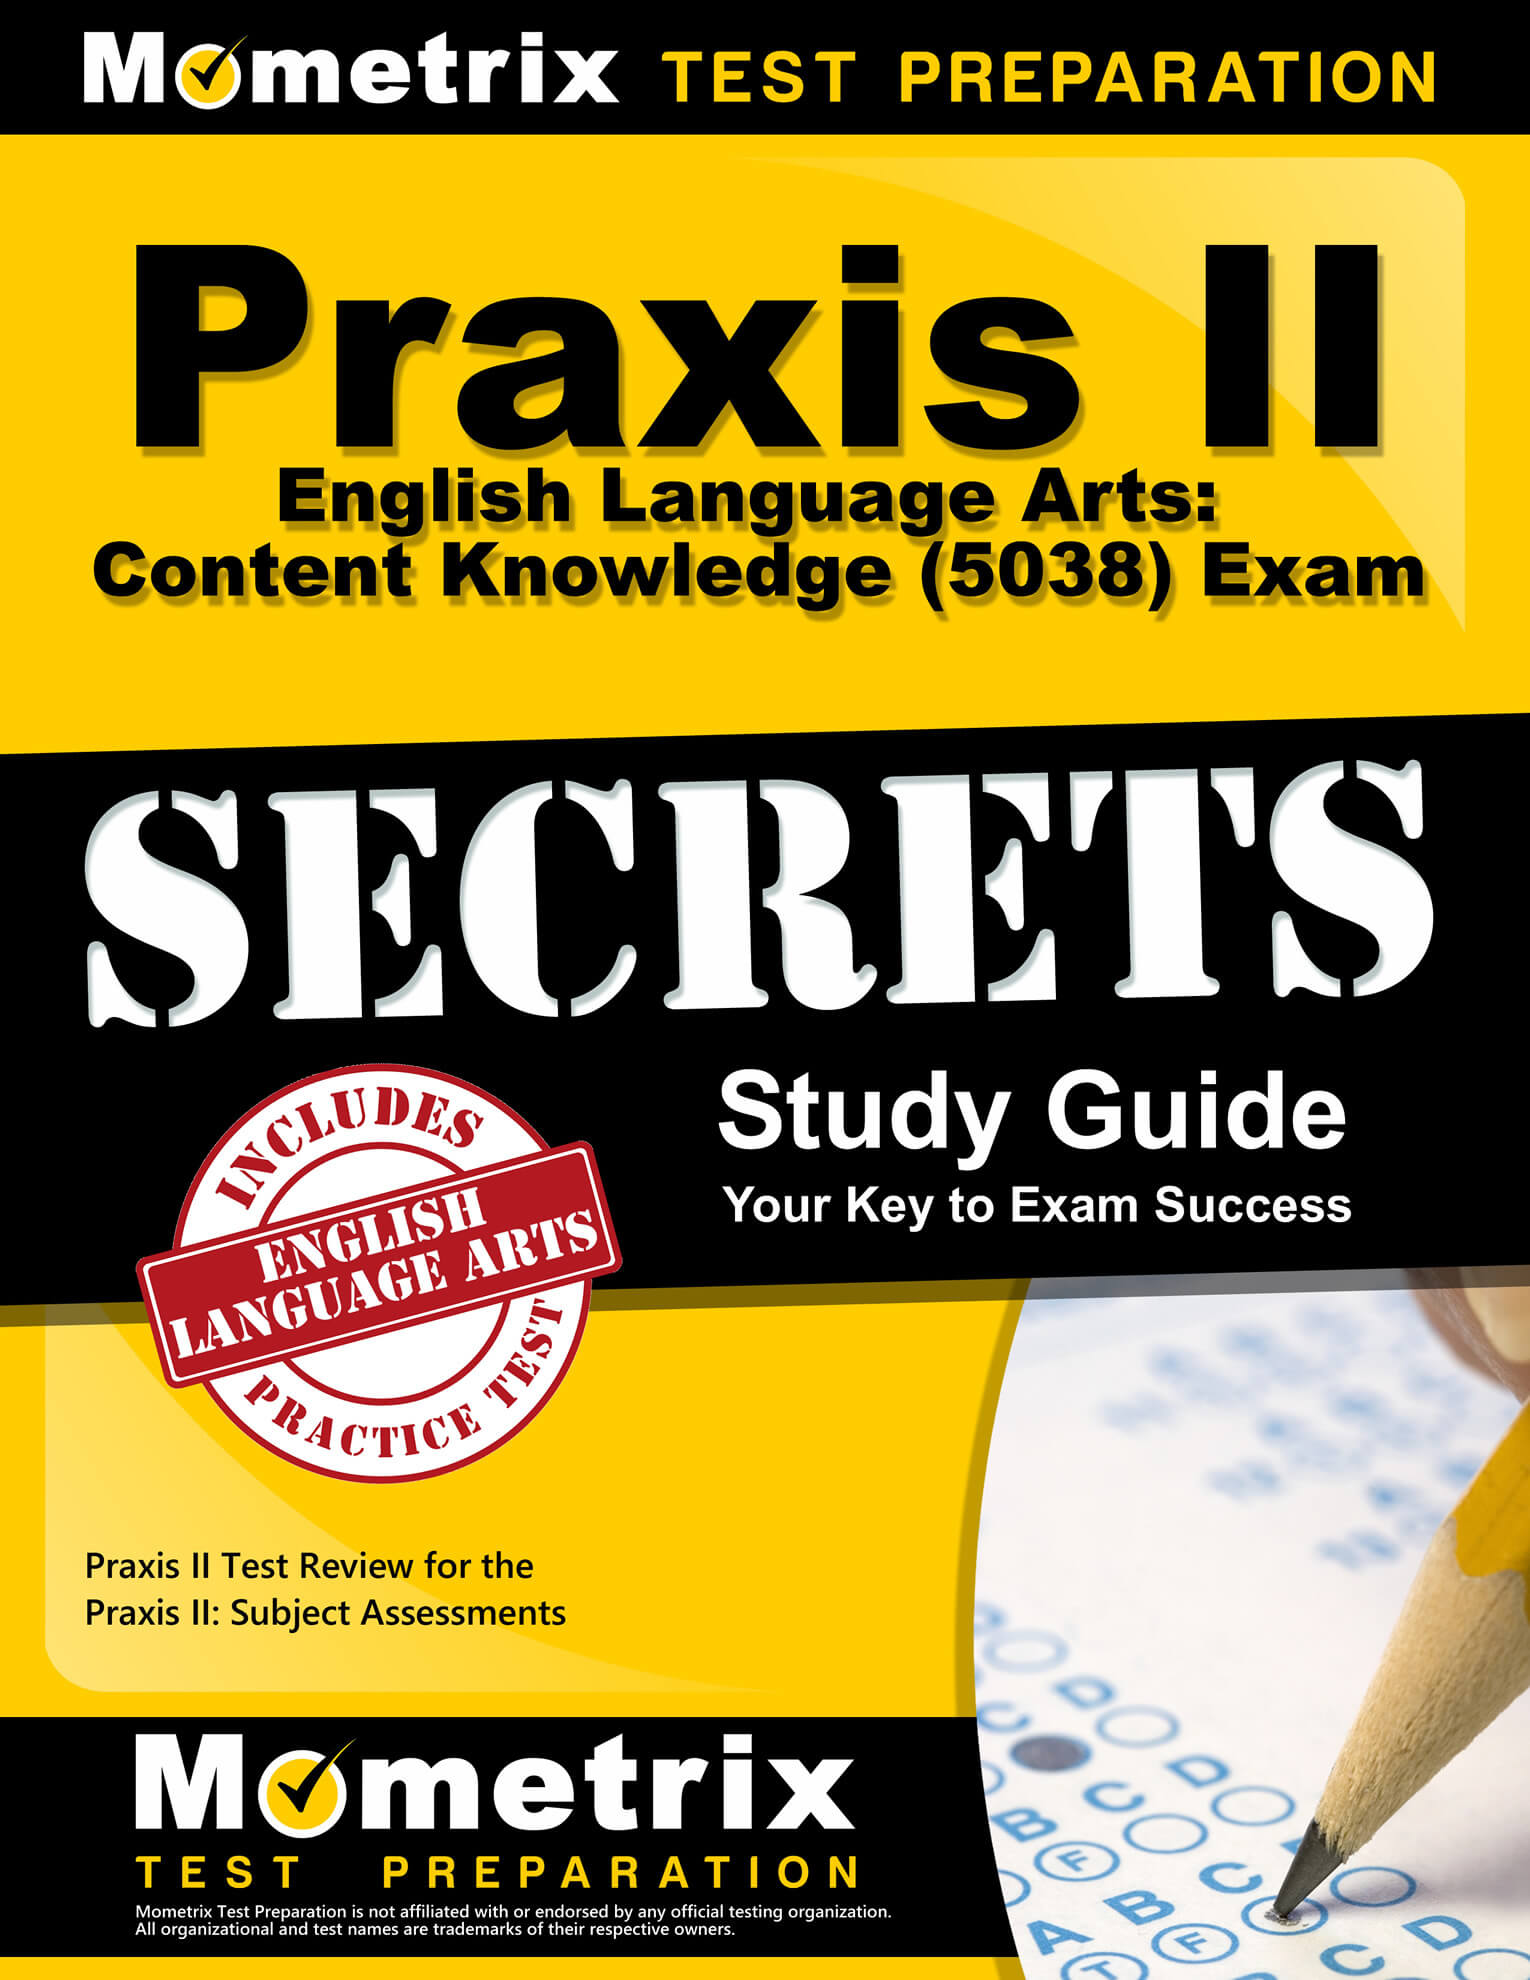 Praxis II English Language Arts: Content Knowledge Study Guide